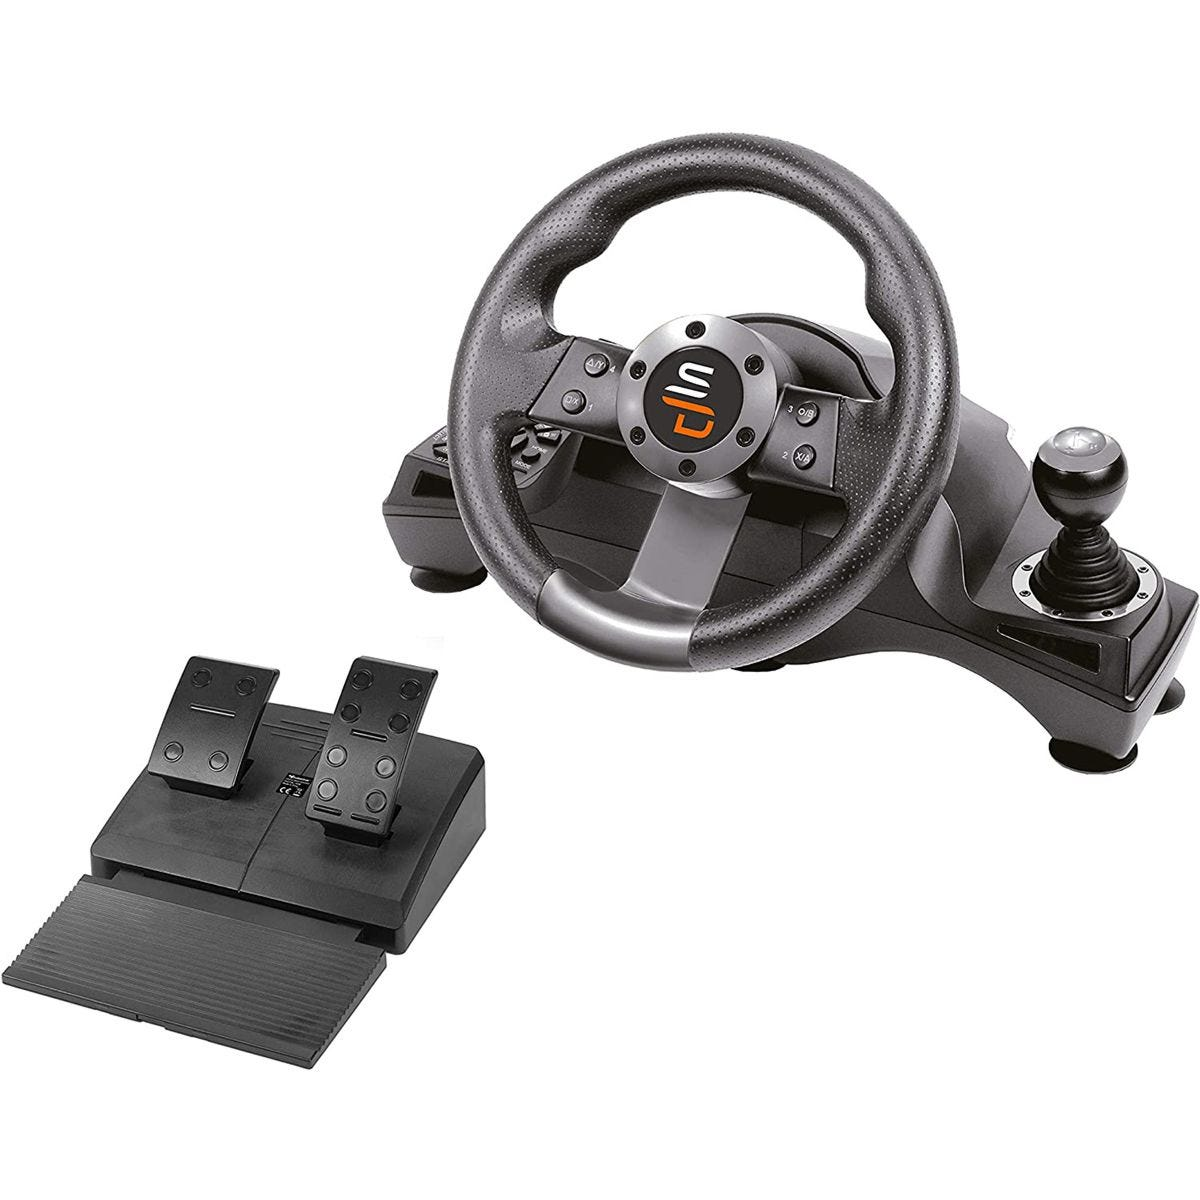 Superdrive GS700 Drive Pro High-end Steering Wheel with Gearshift & Crankset for PS4, XBOX ONE, PC & PS3 - Black